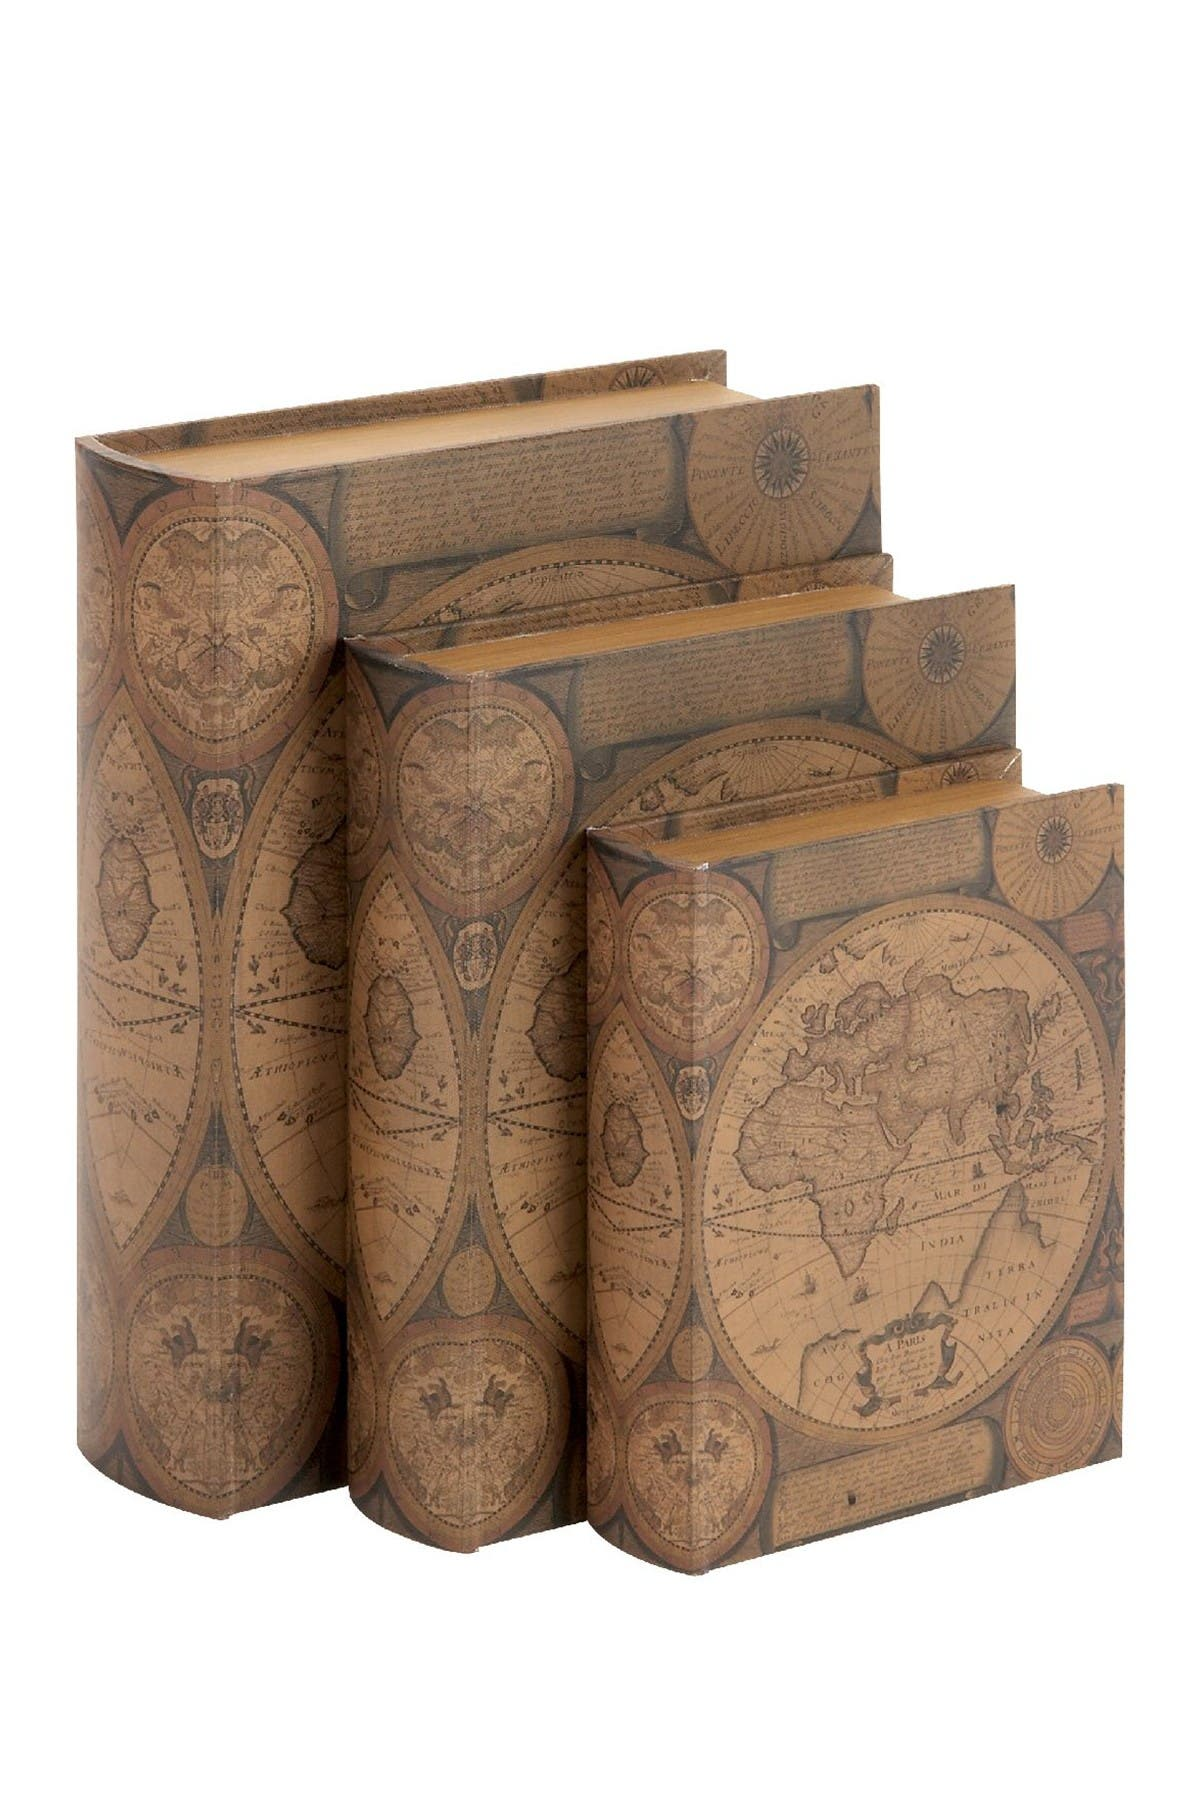 Image of Willow Row Wood & Leather Book Box - Set of 3